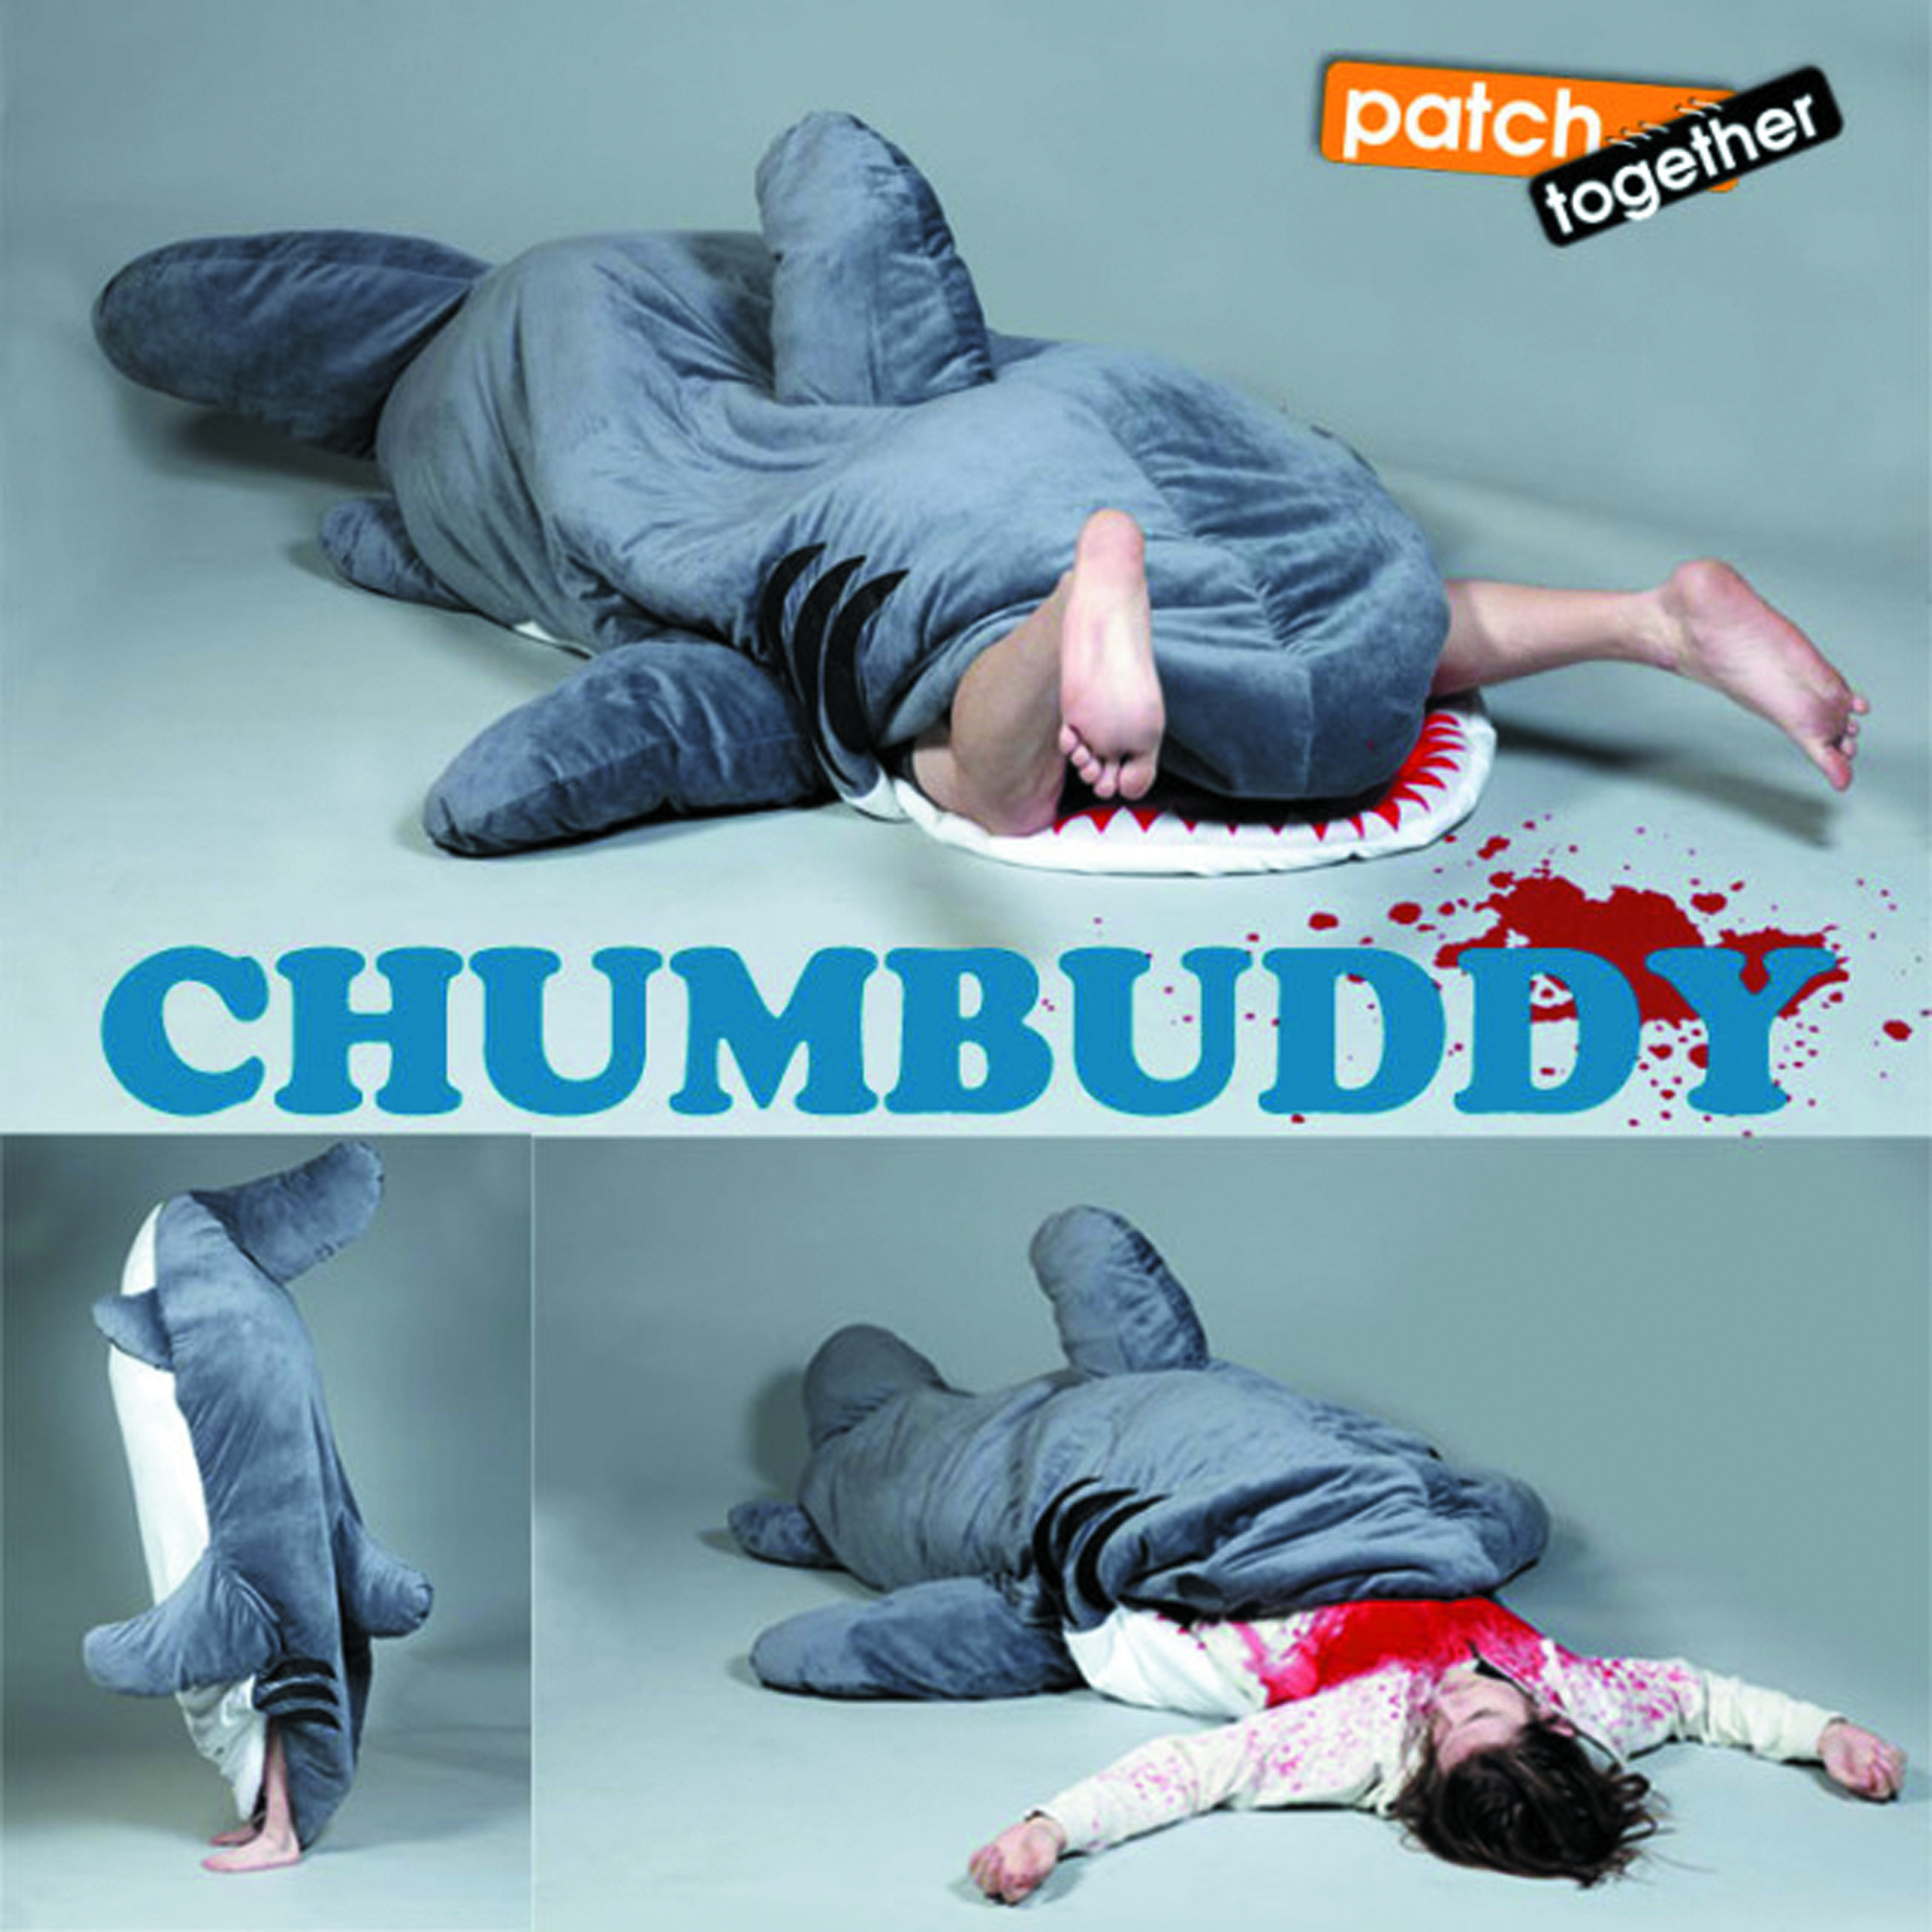 Giant Shark Sleeping Bag may122003 - chumbuddy 2 shark sleeping bag -  previews world